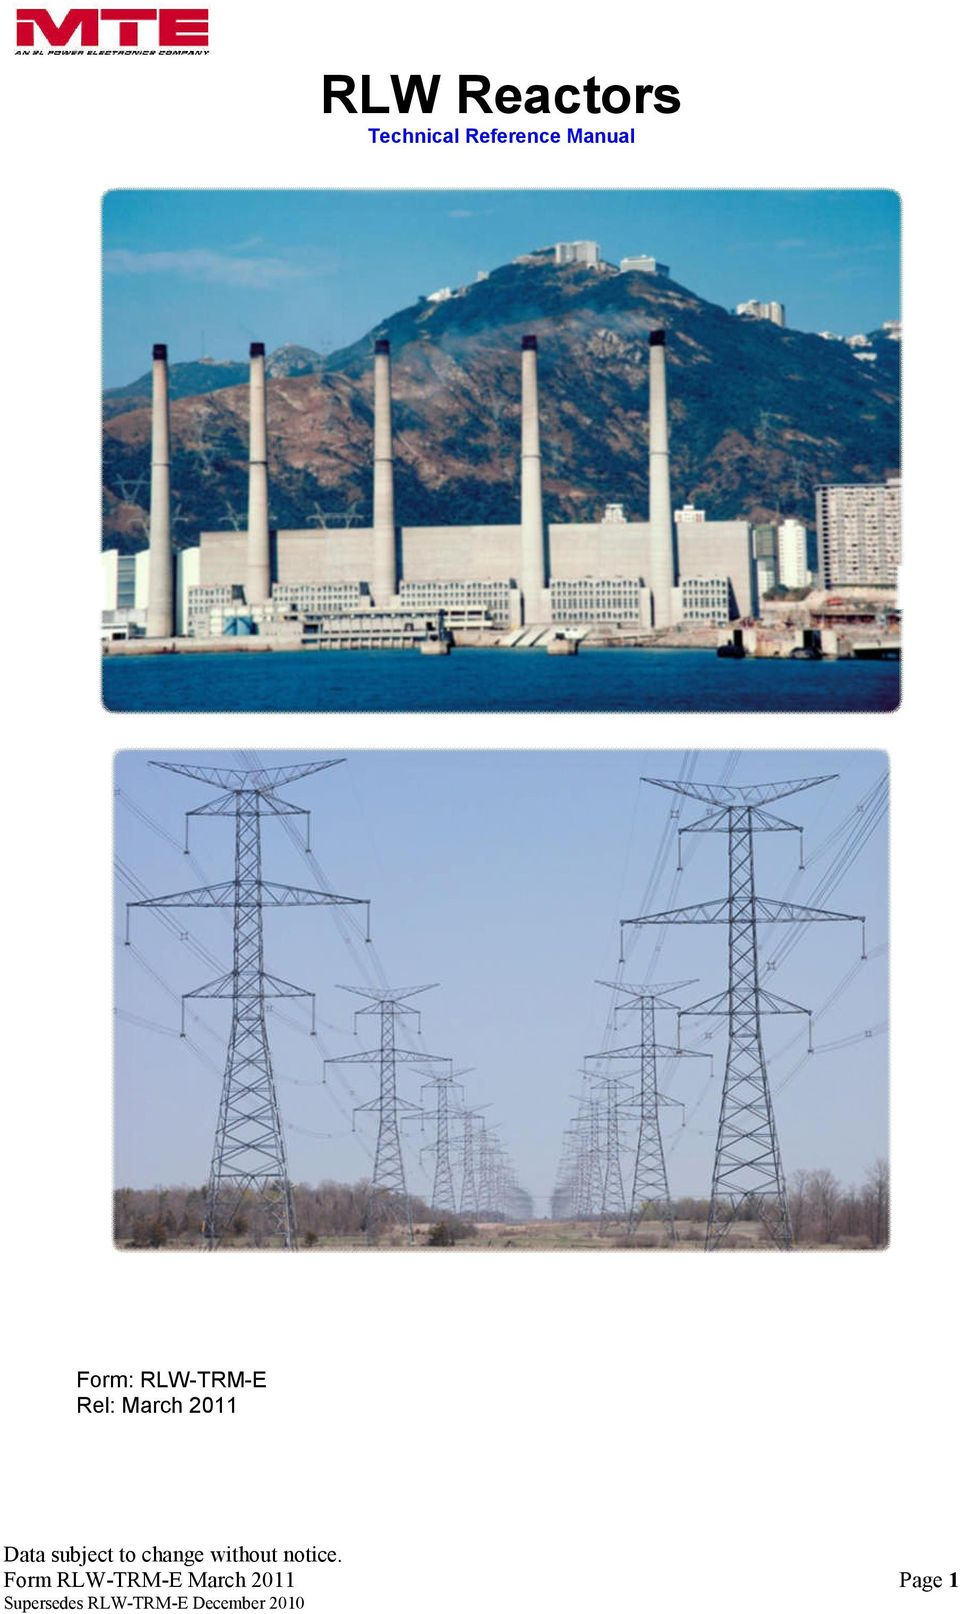 RLW Reactors Technical Reference Manual - PDF